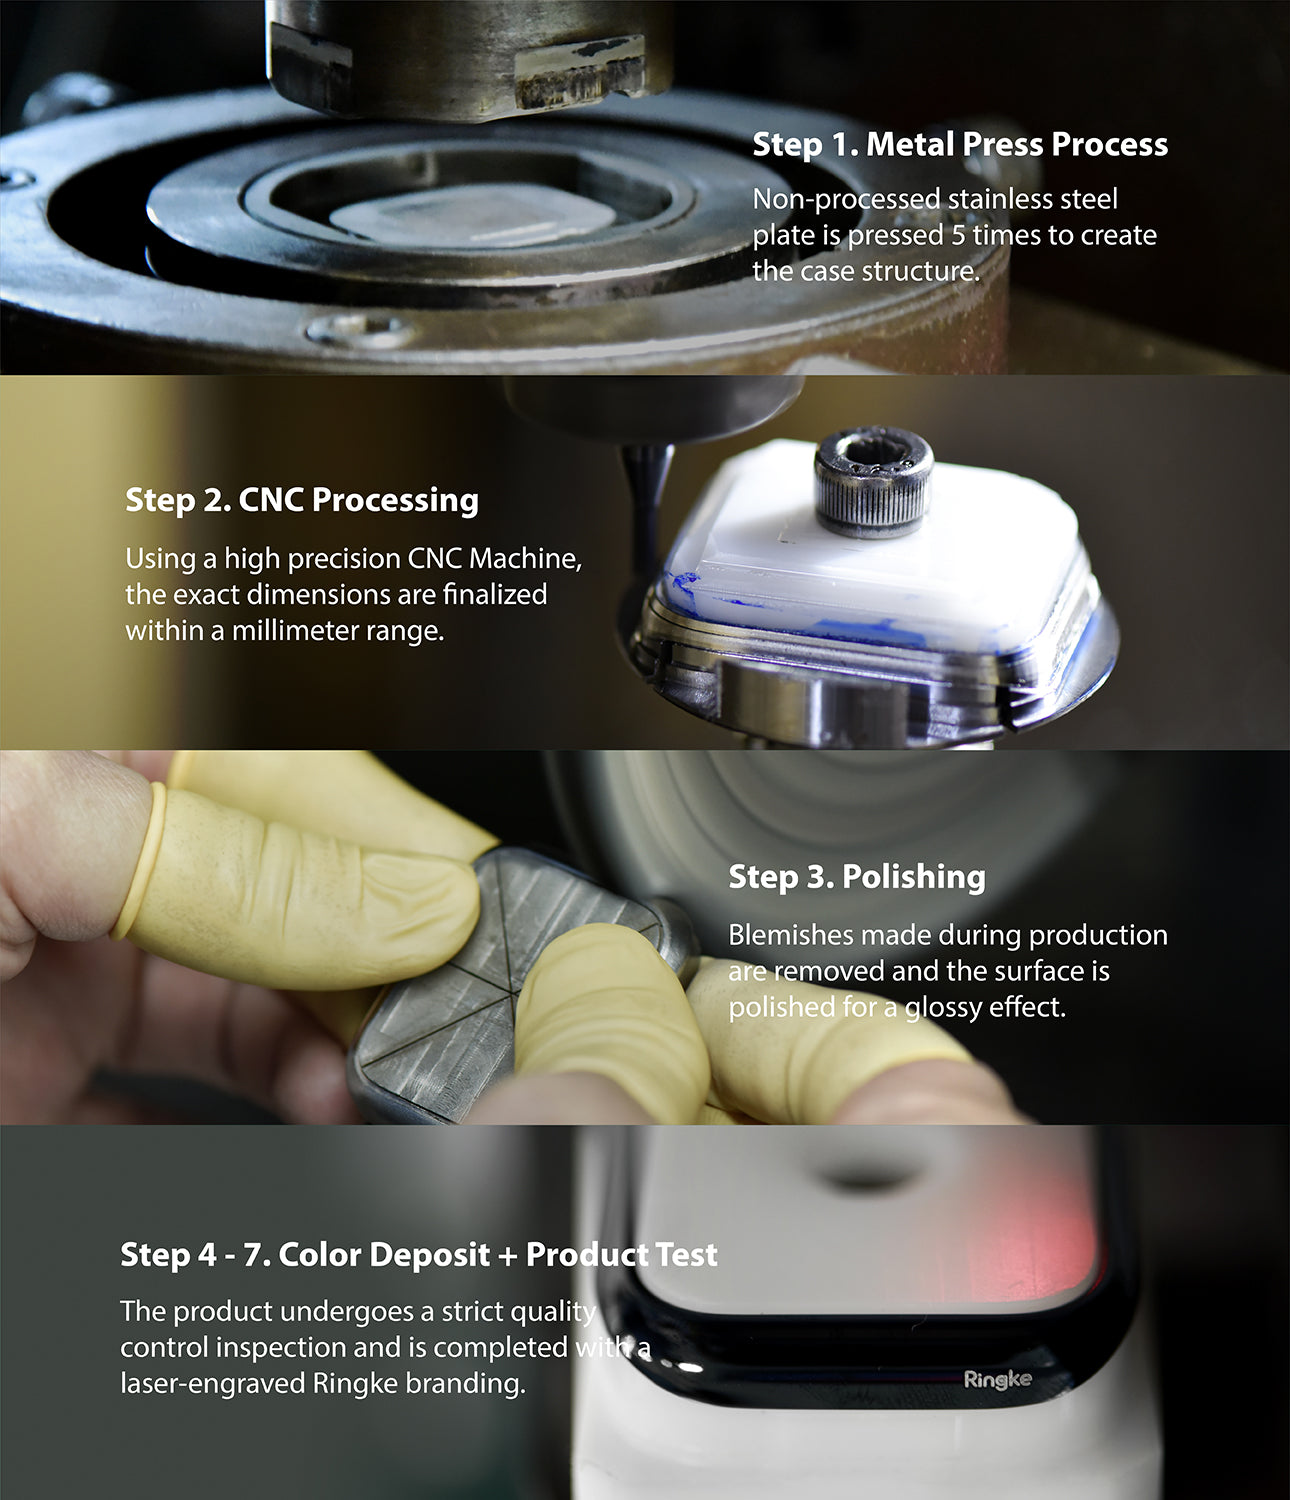 metal press process / cnc processing / polishing / color deposit and product test